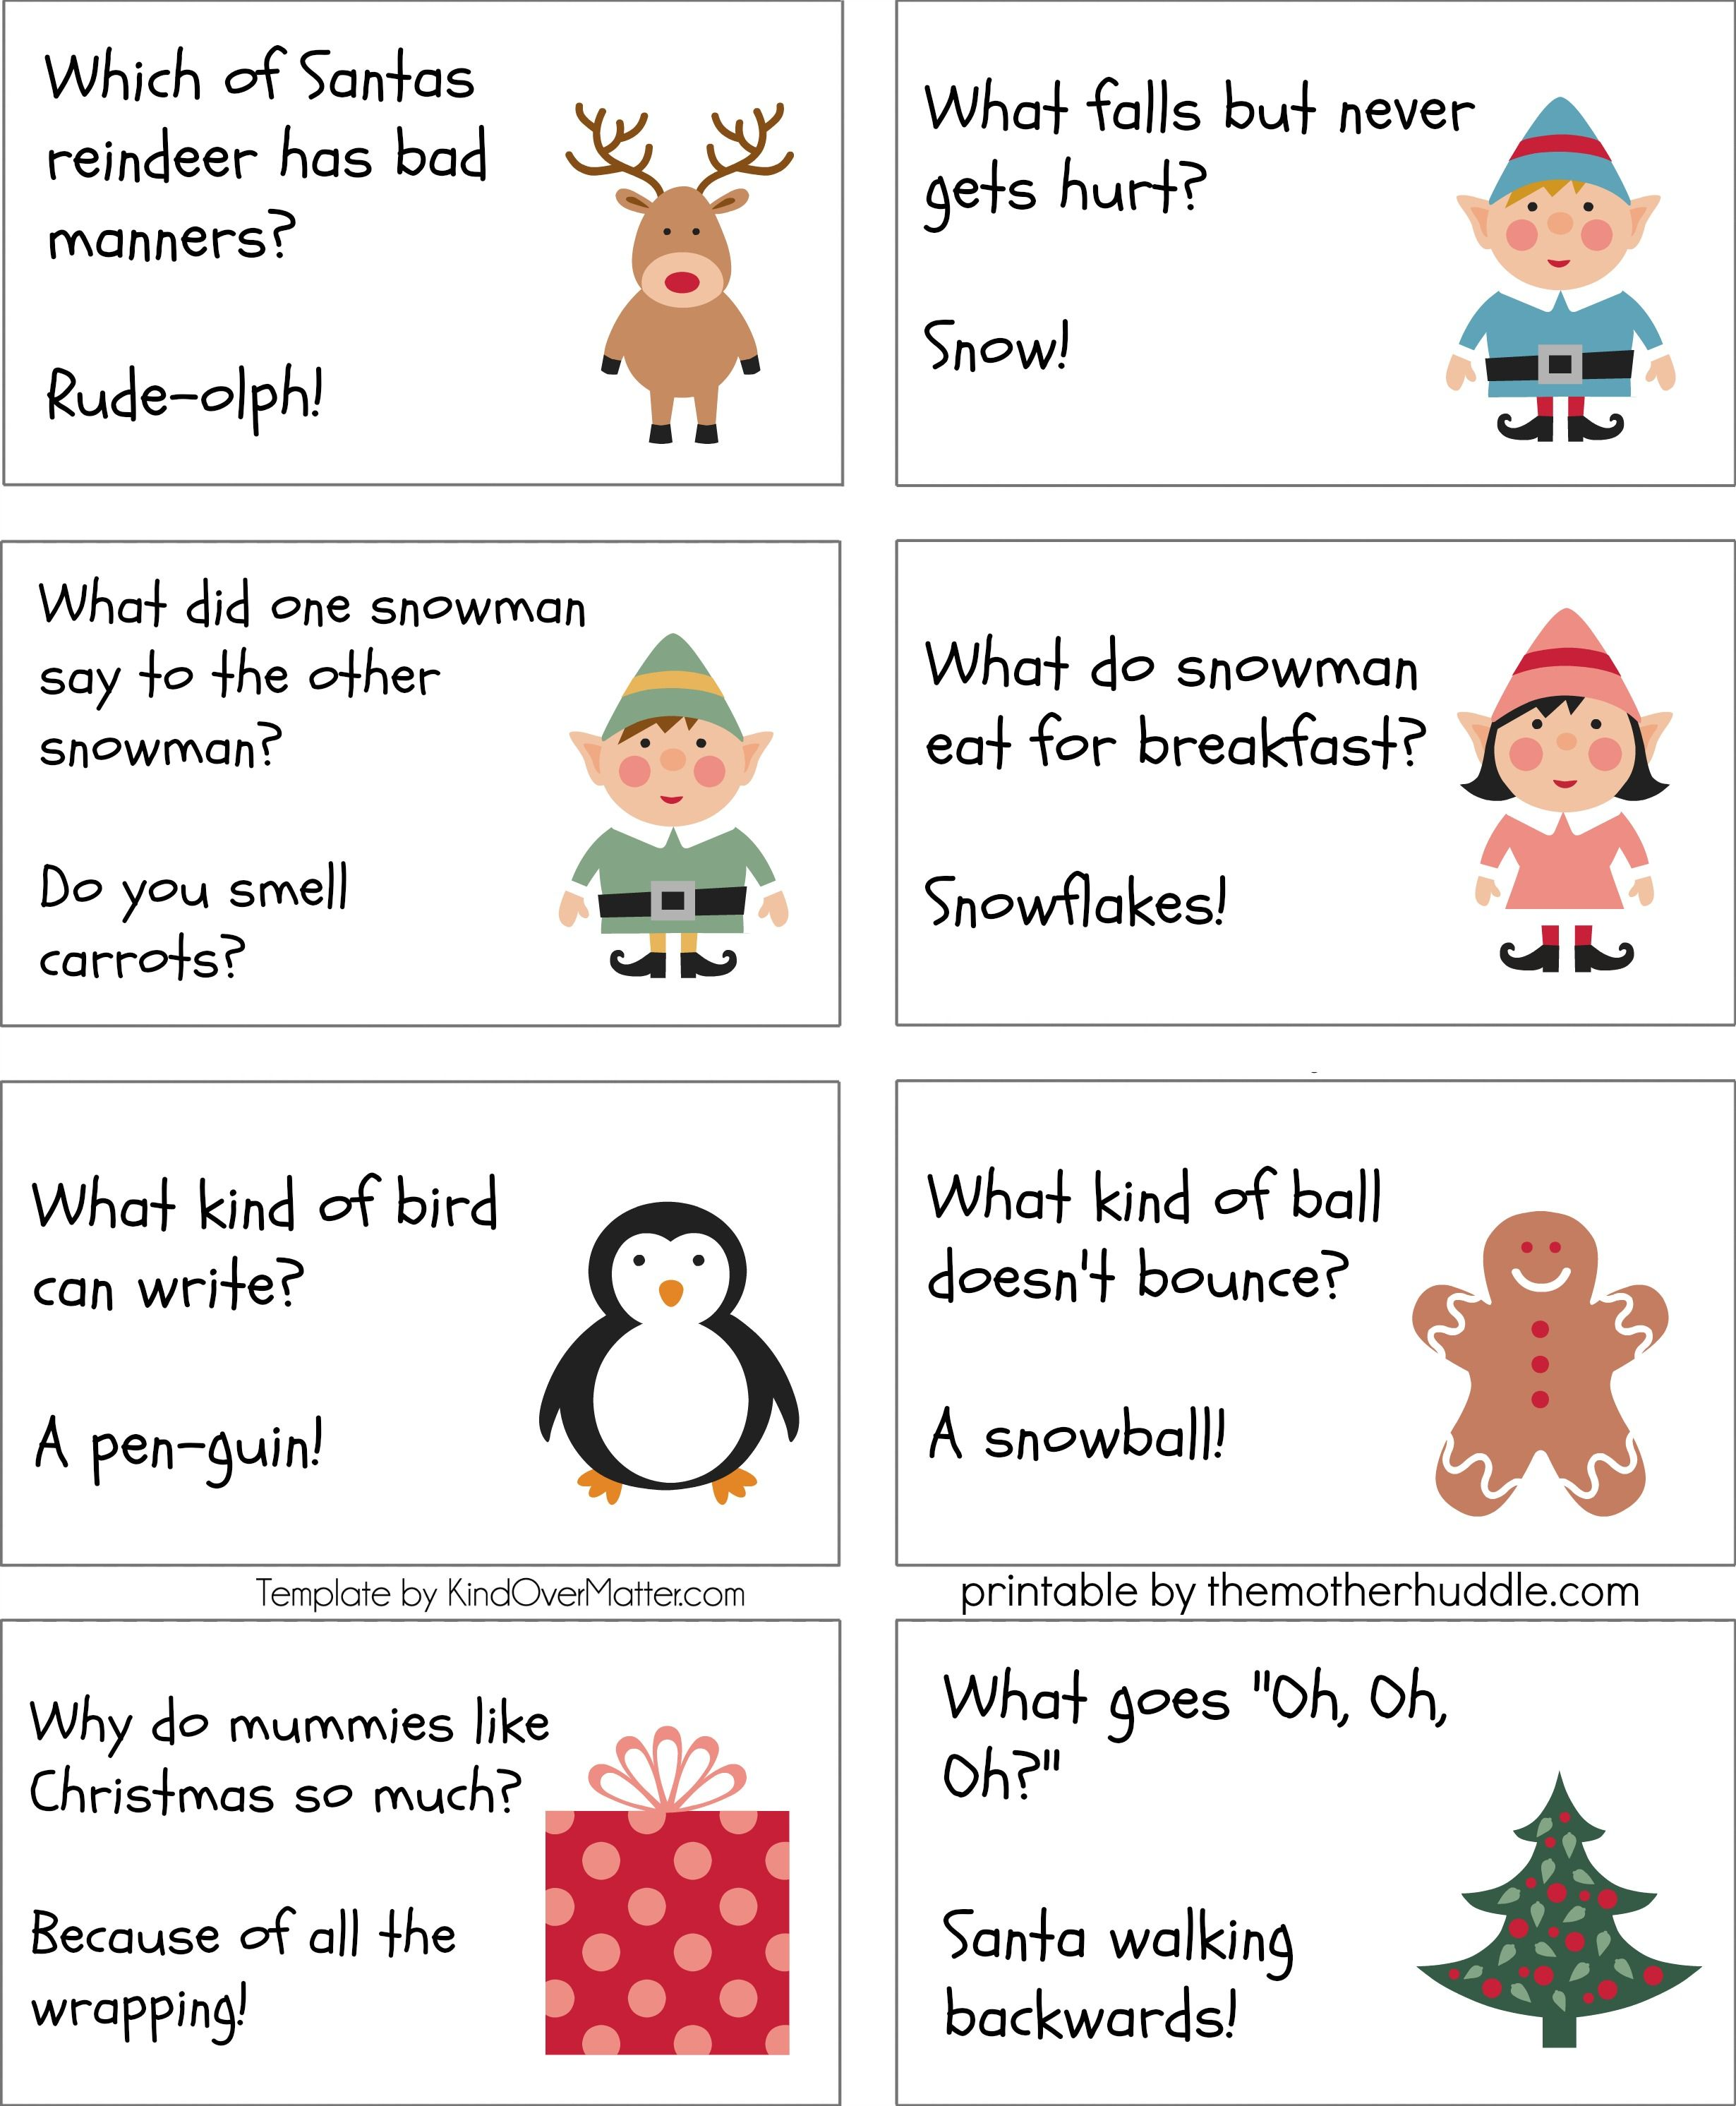 Free Printable Lunchbox Jokes The Mother Huddle Christmas Riddles Christmas Jokes For Kids Christmas Riddles For Kids